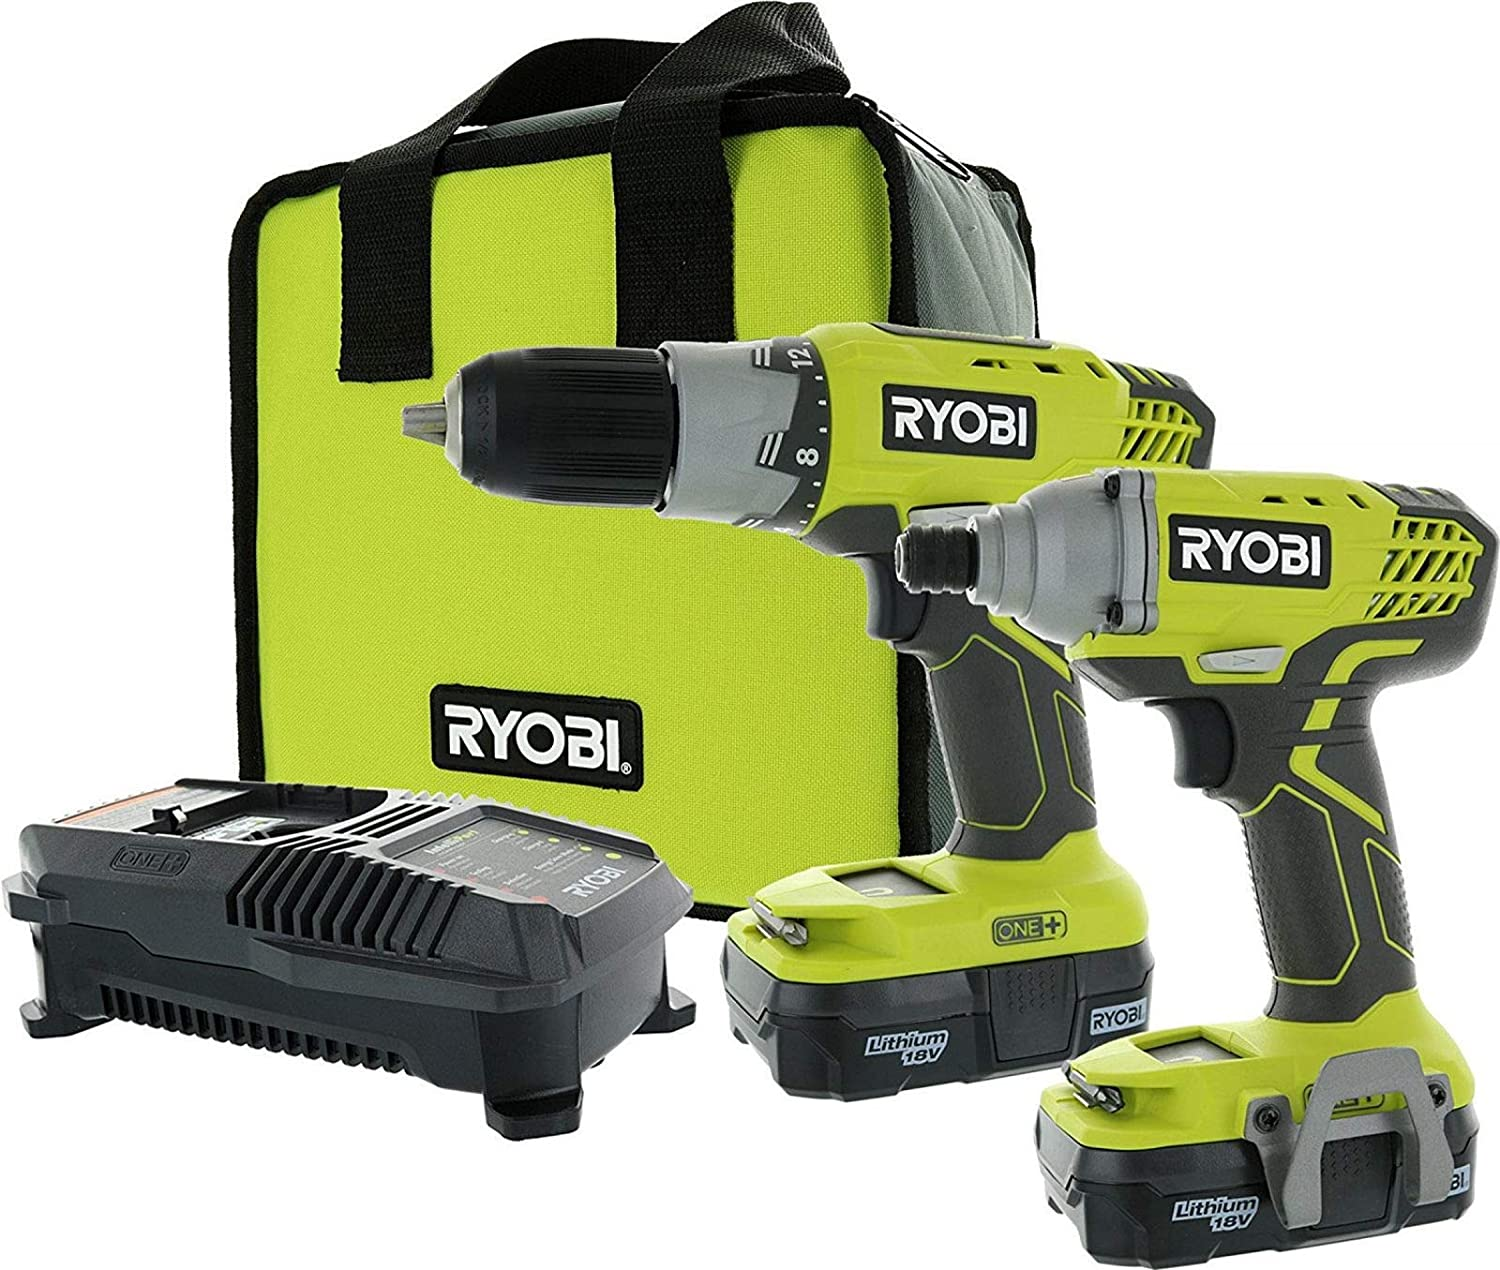 Ryobi P882 One 18v Lithium-Ion Drill and Impact Driver Kit